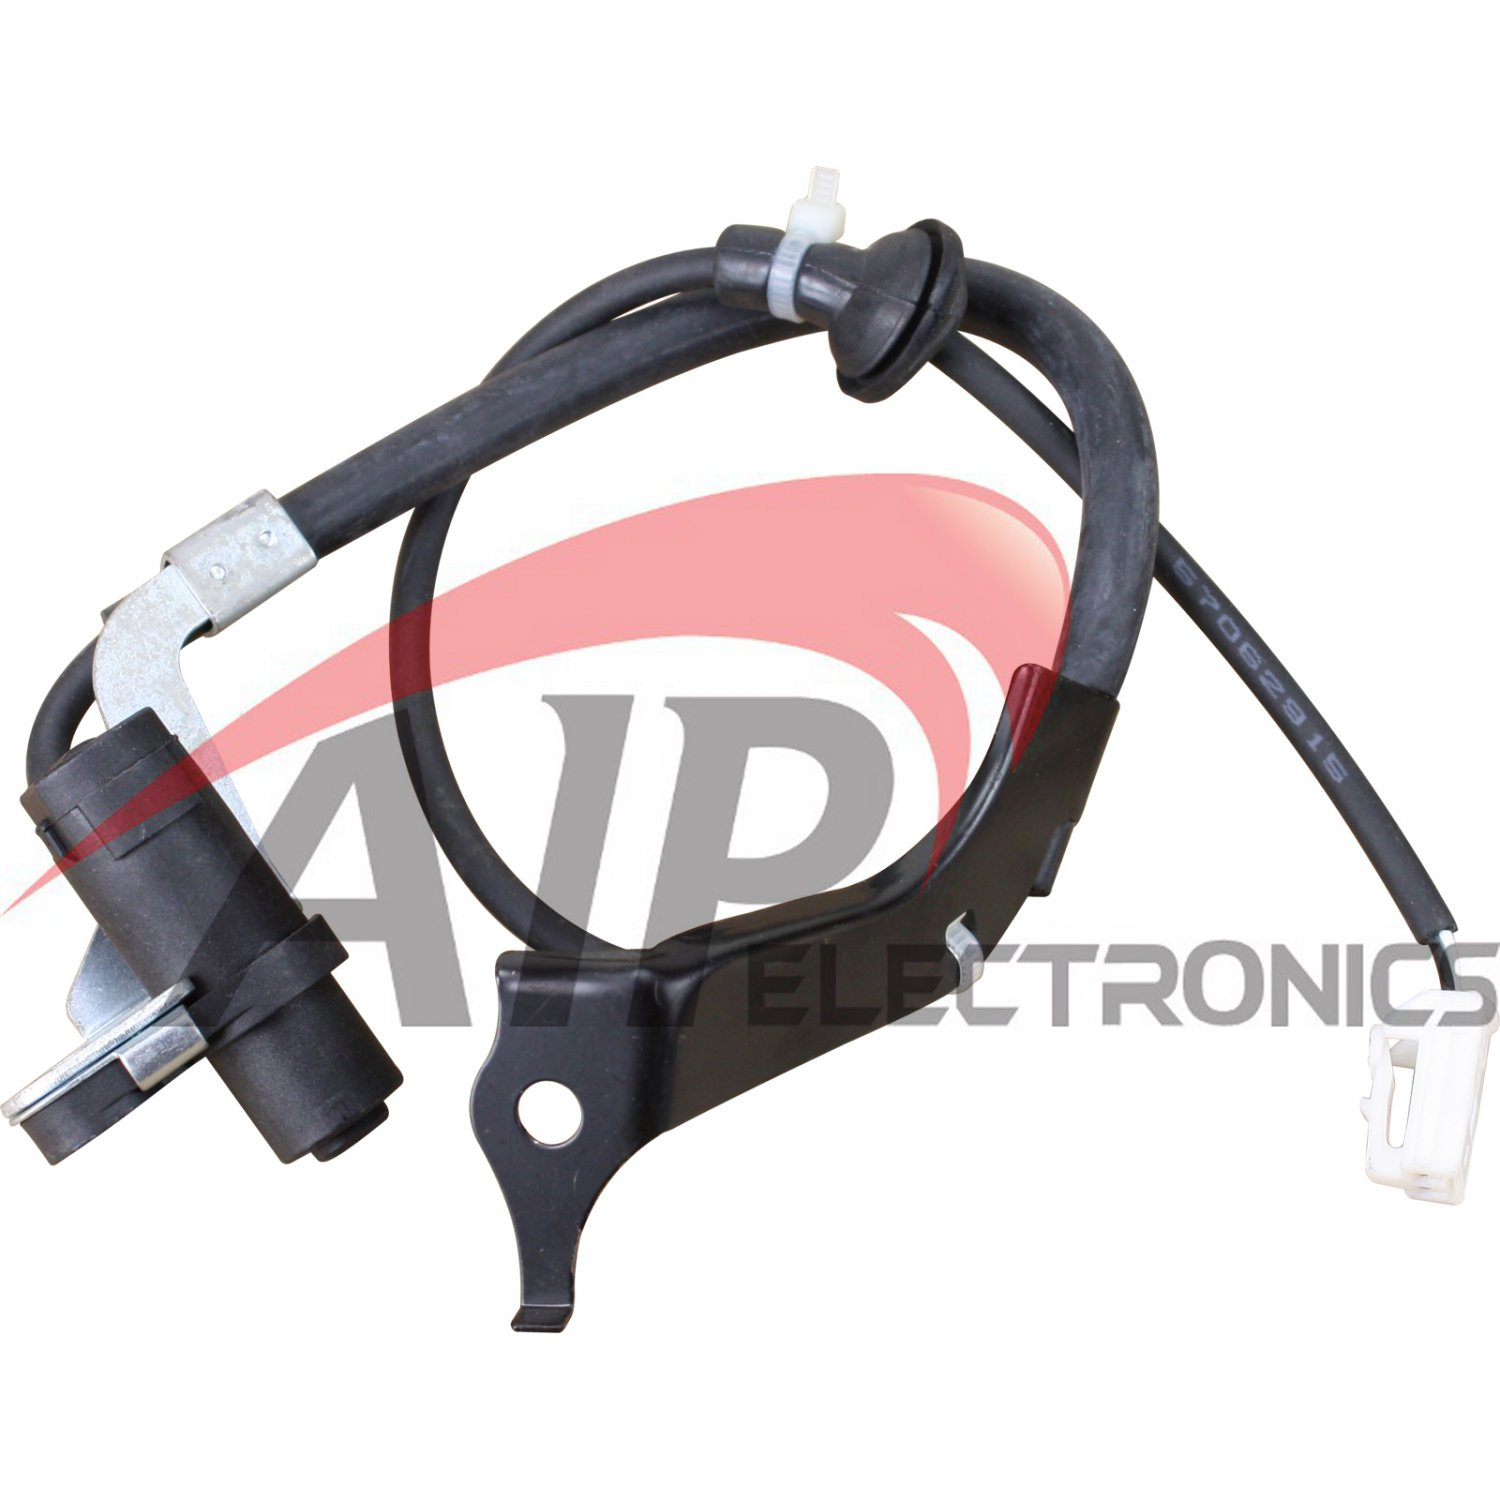 Brand New Rear Right ABS Wheel Speed Sensor for 2004-2010 Toyota Sienna 3.3L 3.5L AWD Oem Fit ABS818